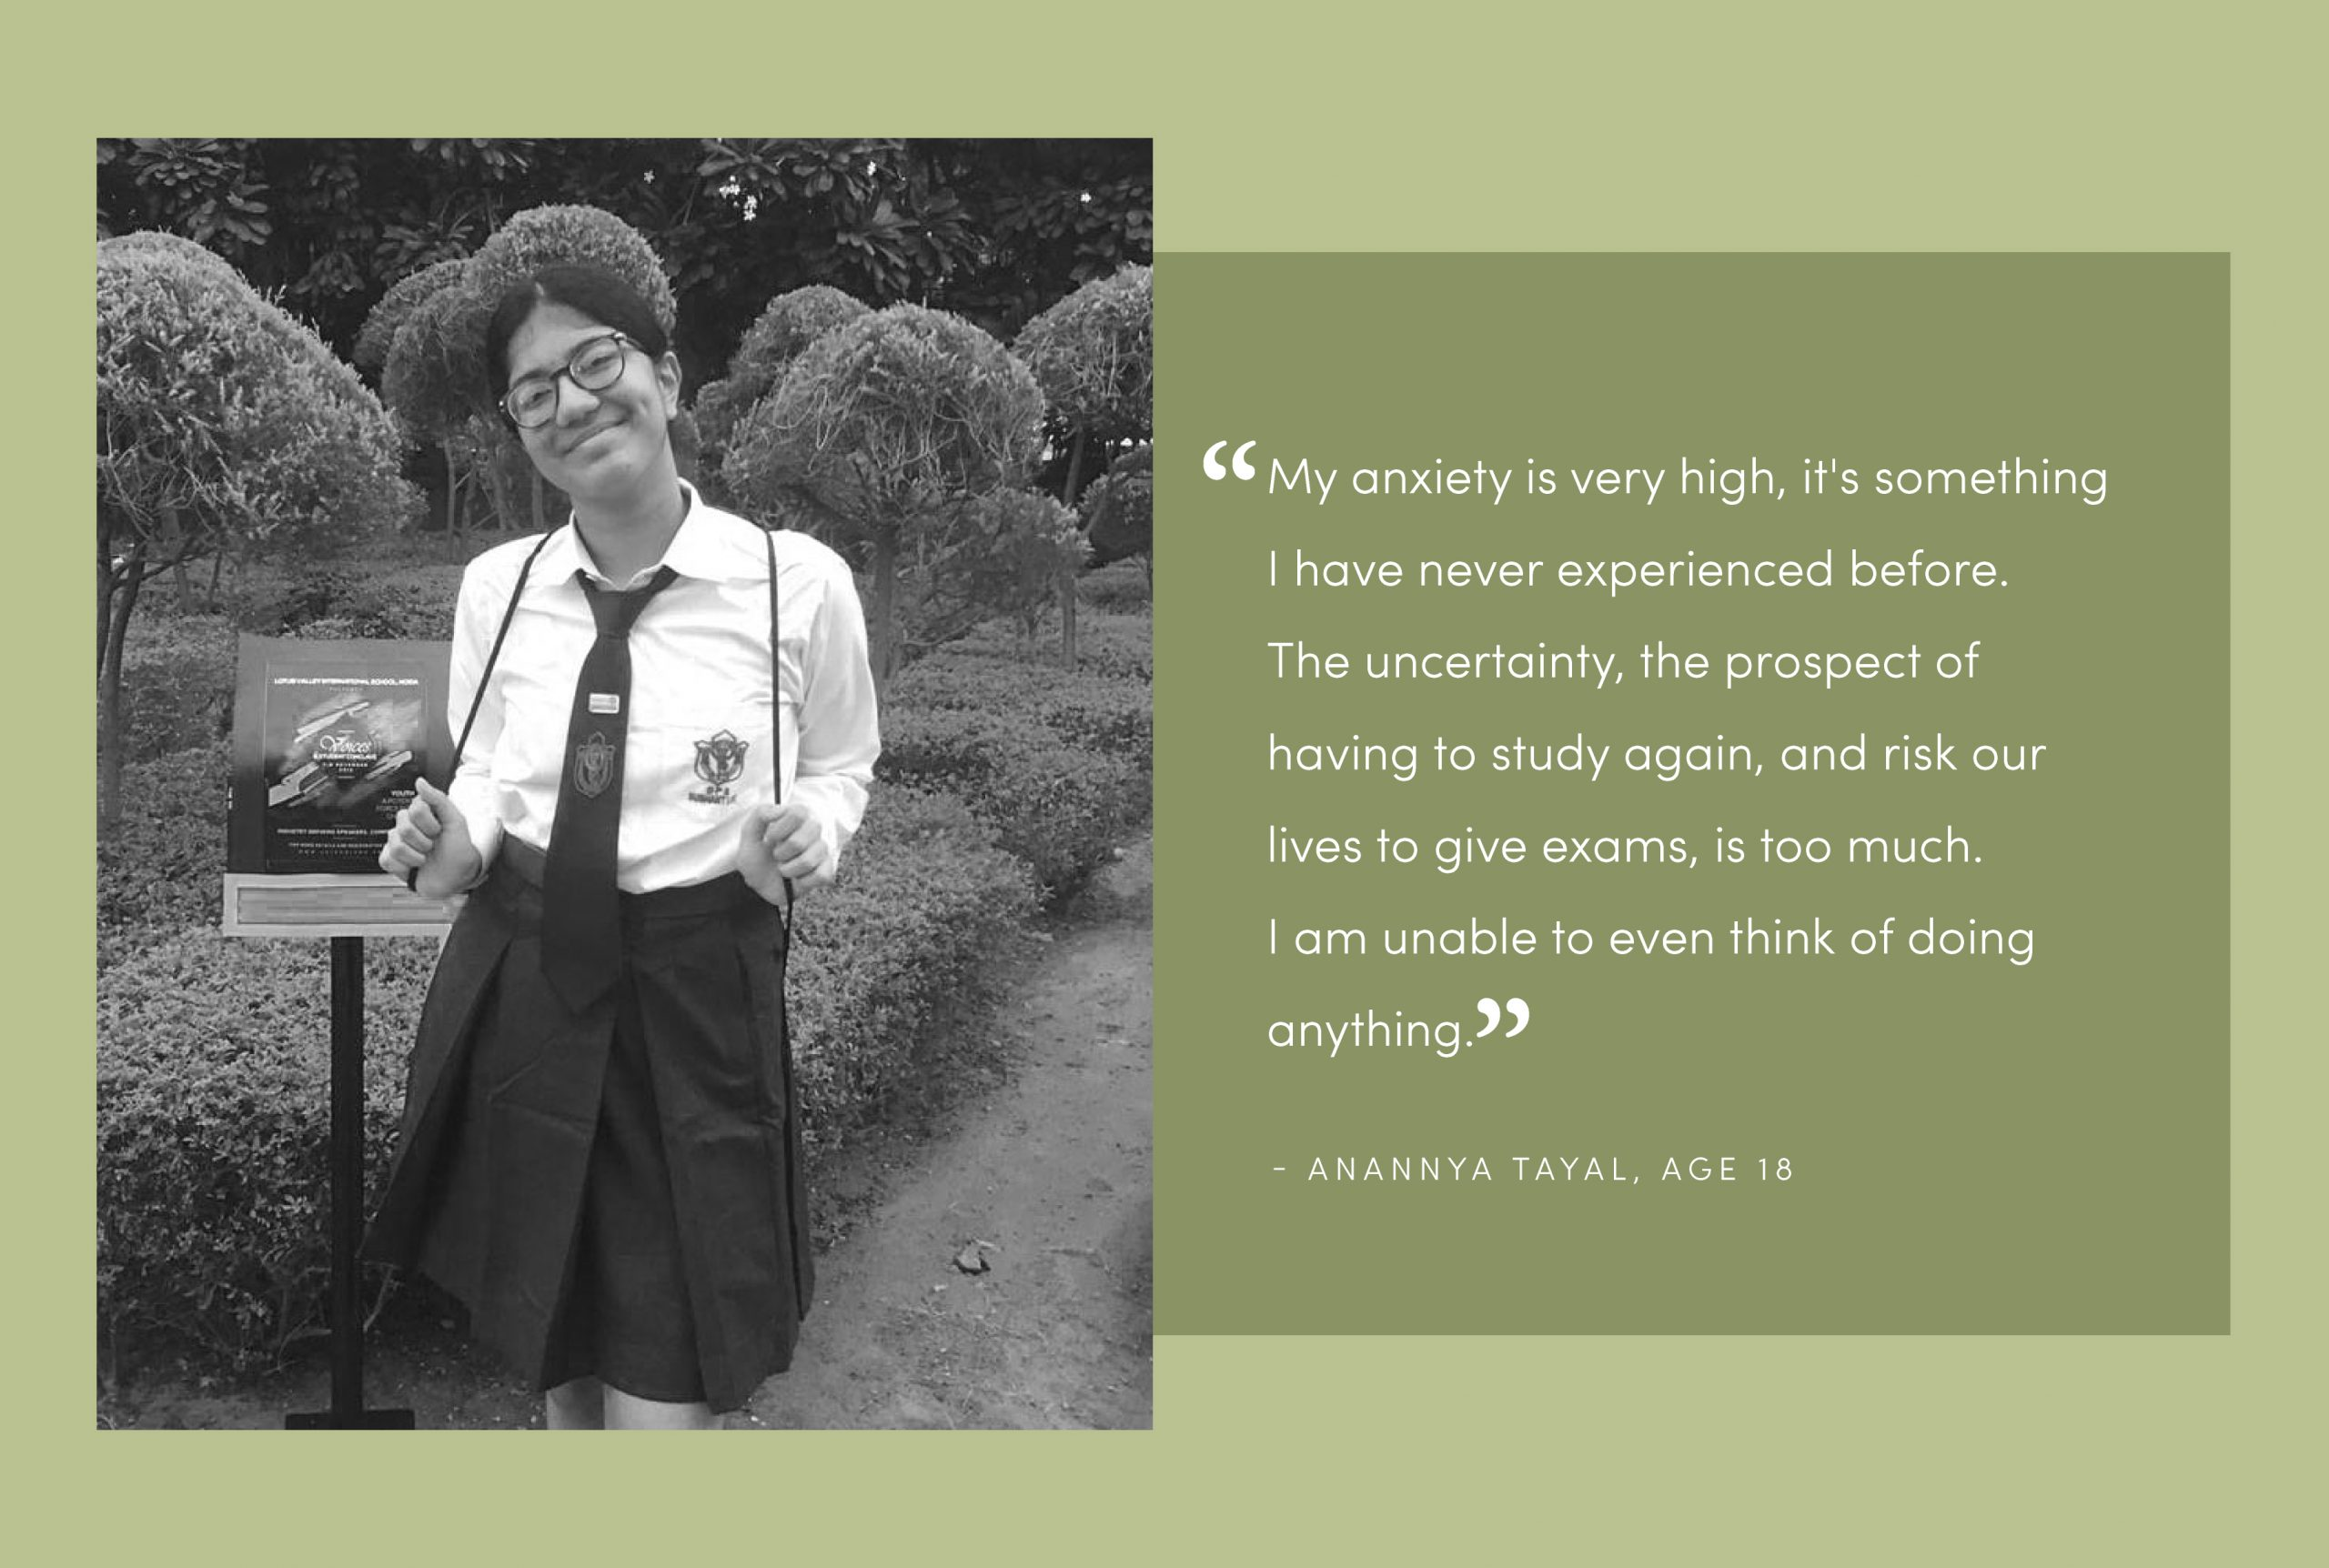 """Photo of CBSE grade 12 student Anannya Tayal smiling at the camera in her school uniform holding her bag strings against a green background with split screen, the quote says """"My anxiety is very high, it's something I have never experienced before. The uncertainty, the prospect of having to study again, and risk our lives to give exams, is too much. I am unable to even think of doing anything."""""""